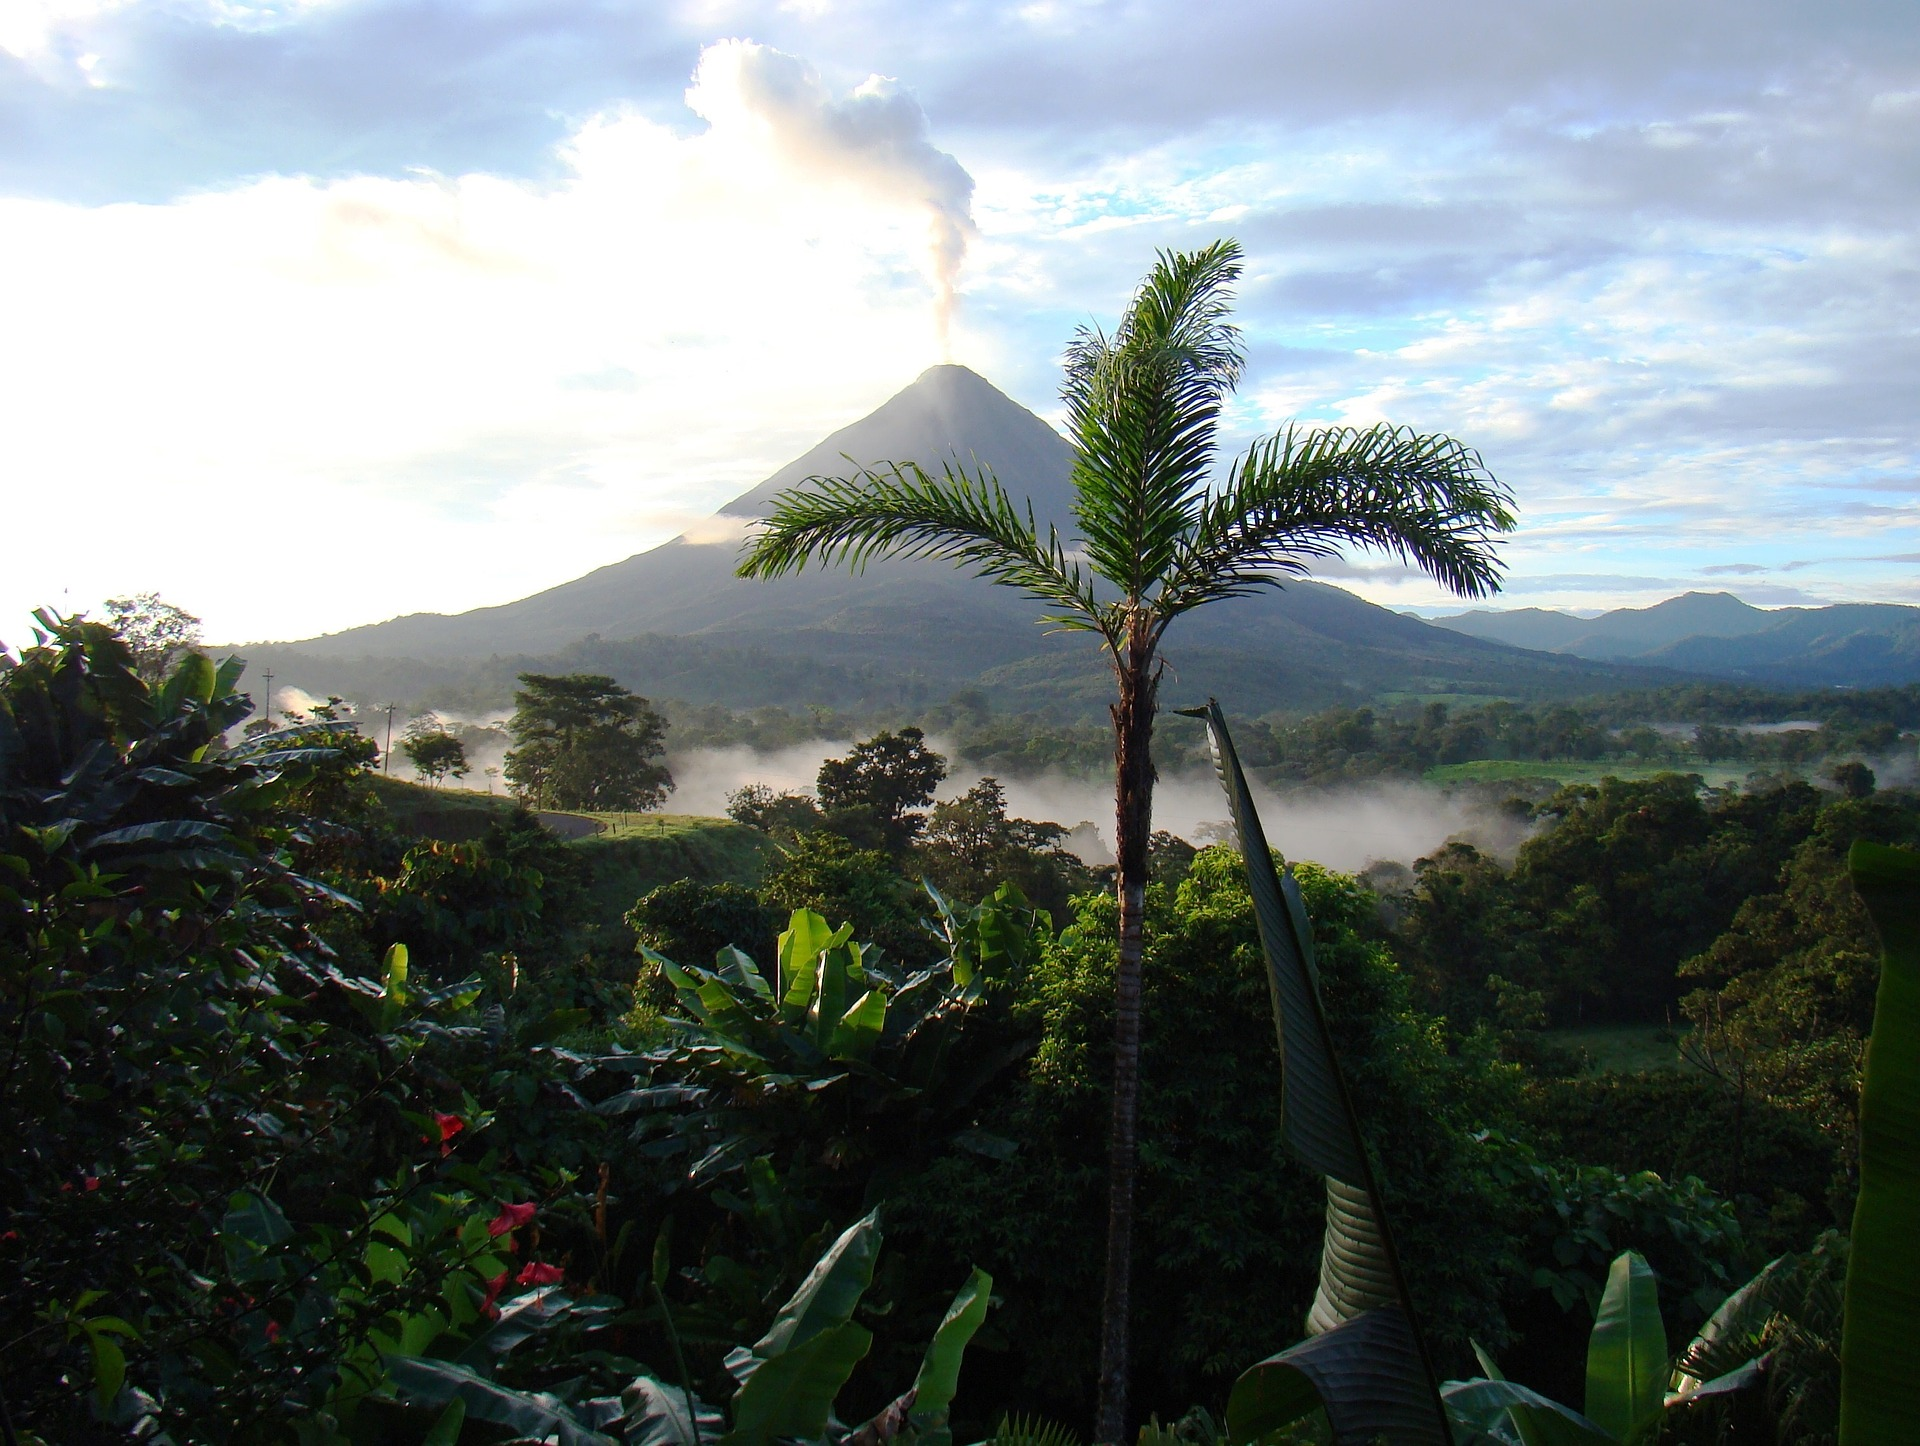 Go On The Best Costa Rica Volcano Tour While You Visit The Guanacaste Province On Your Costa Rica Adventure Vacations 3 Monkies Tours